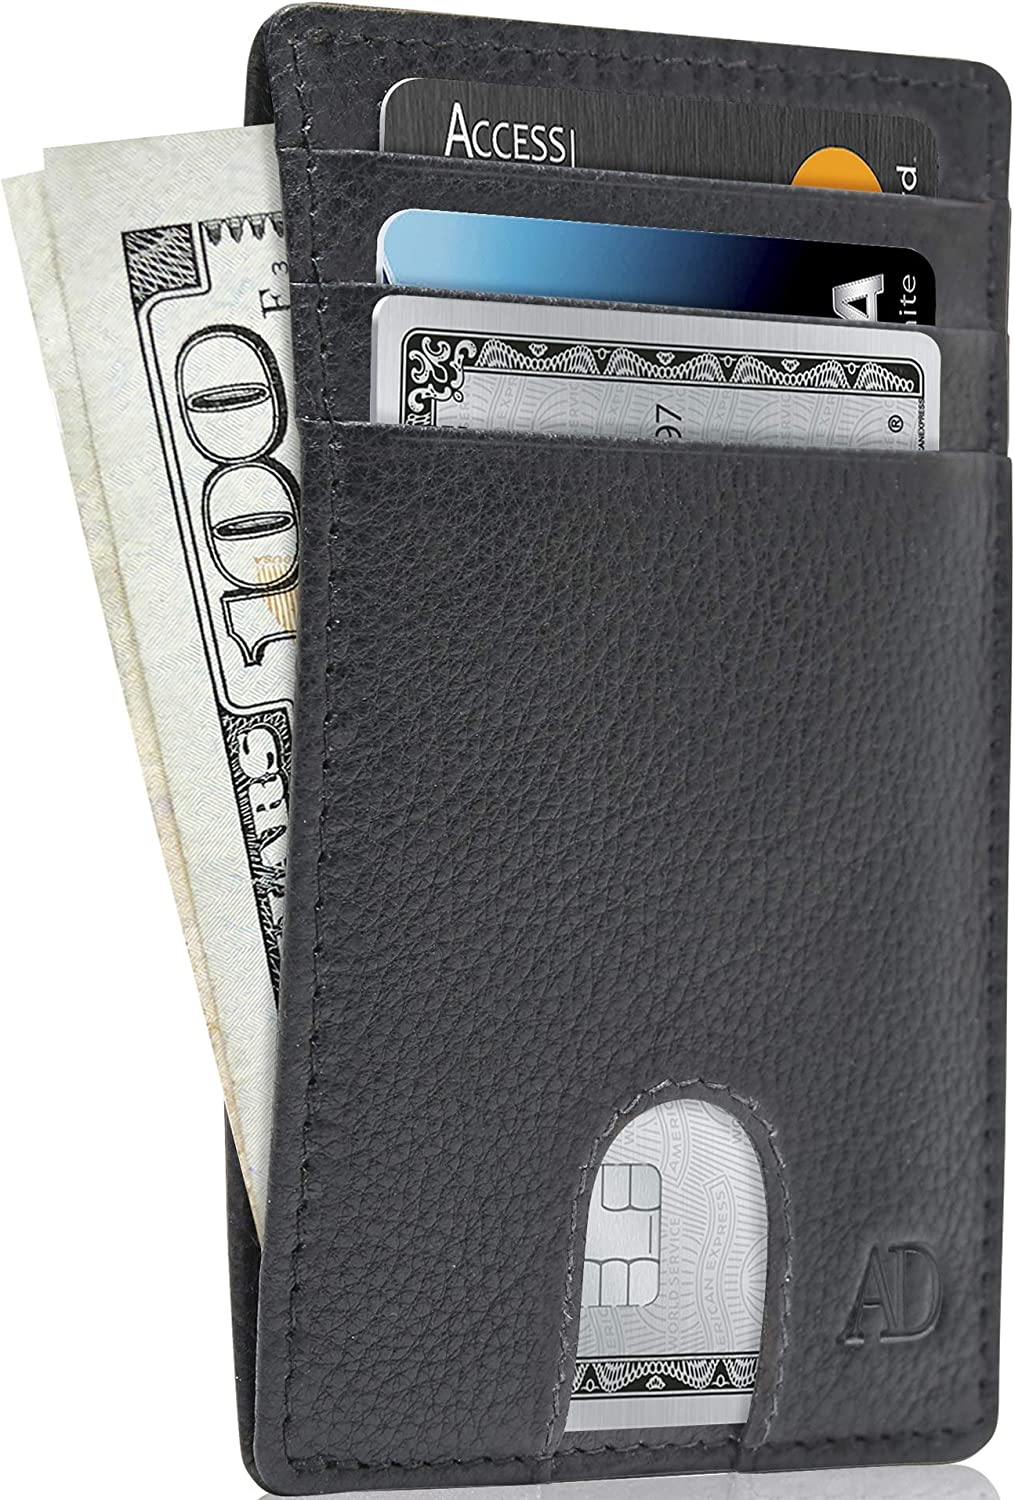 Genuine Soft Leather Slim BLUE Wallet 8 Credit Card Holder Note Compartment